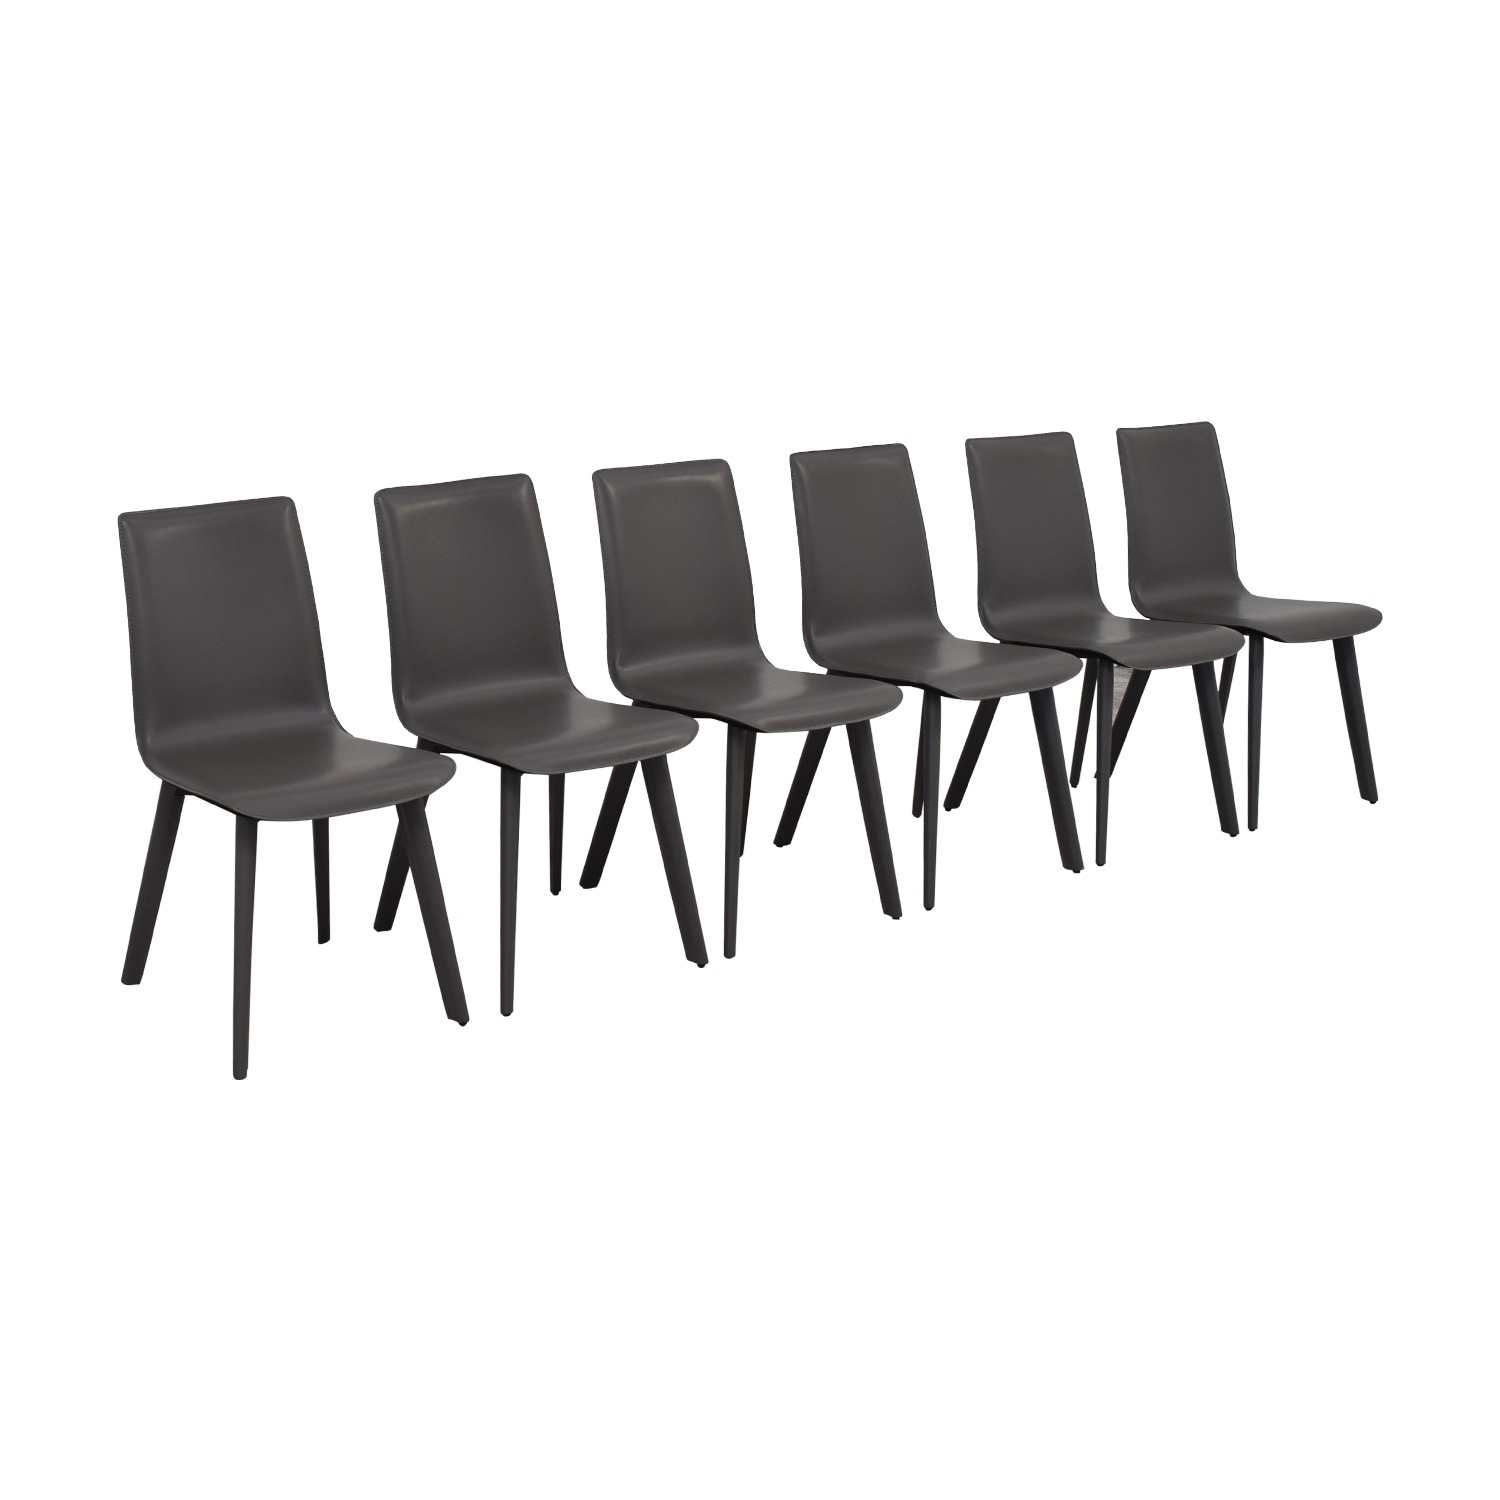 buy Room & Board Hirsch Dining Chairs Room & Board Chairs